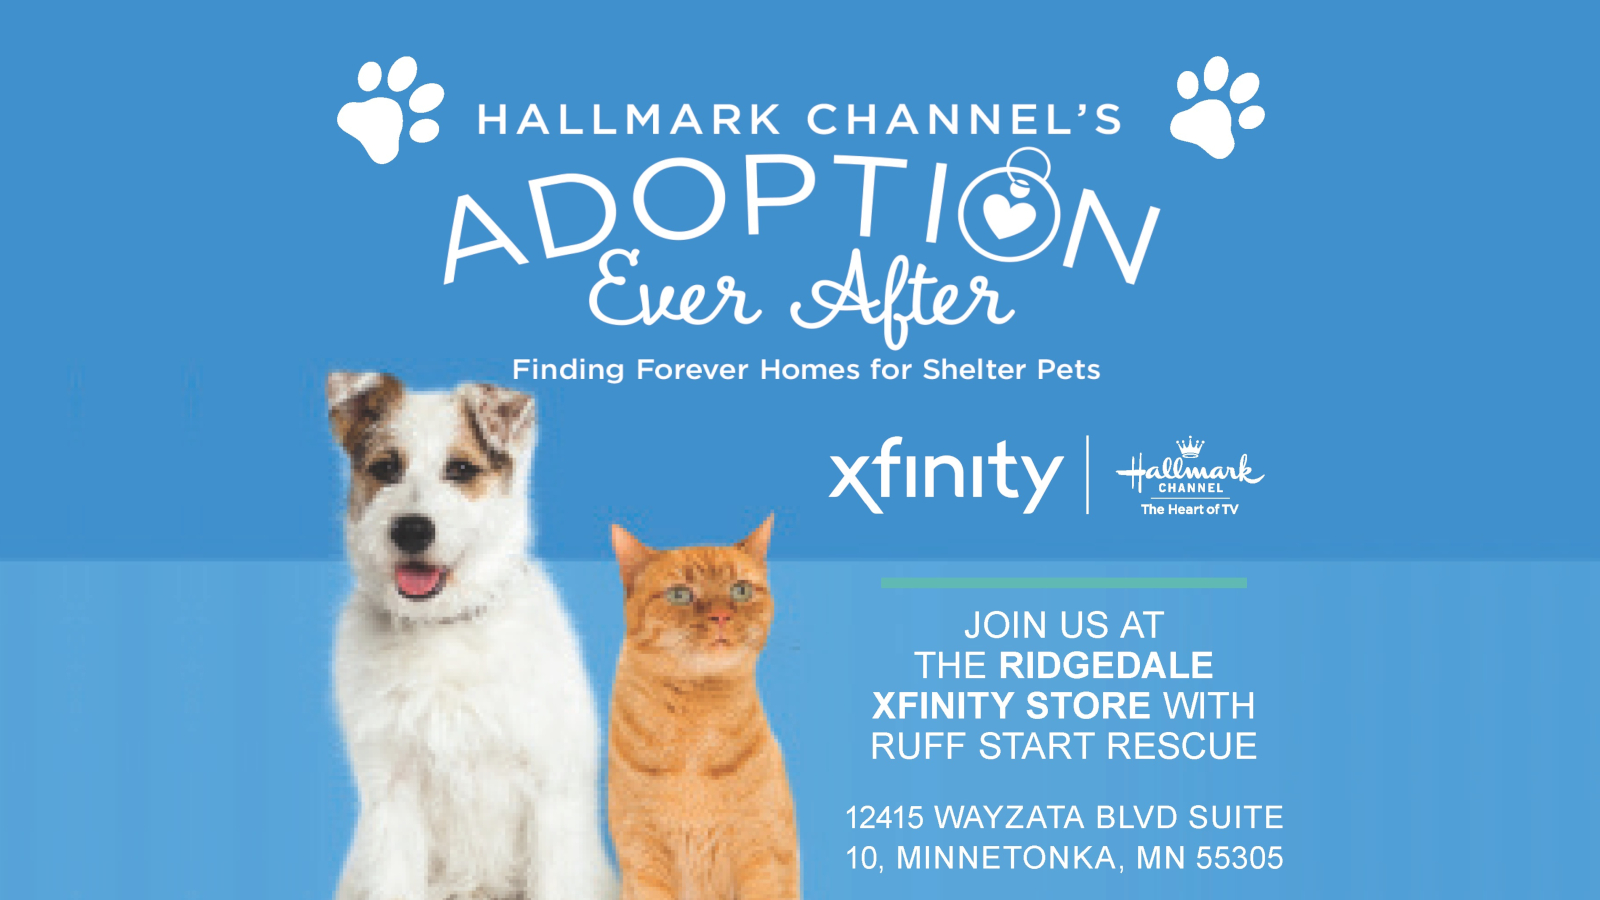 Comcast to Host Hallmark Channel's Adoption Ever After at